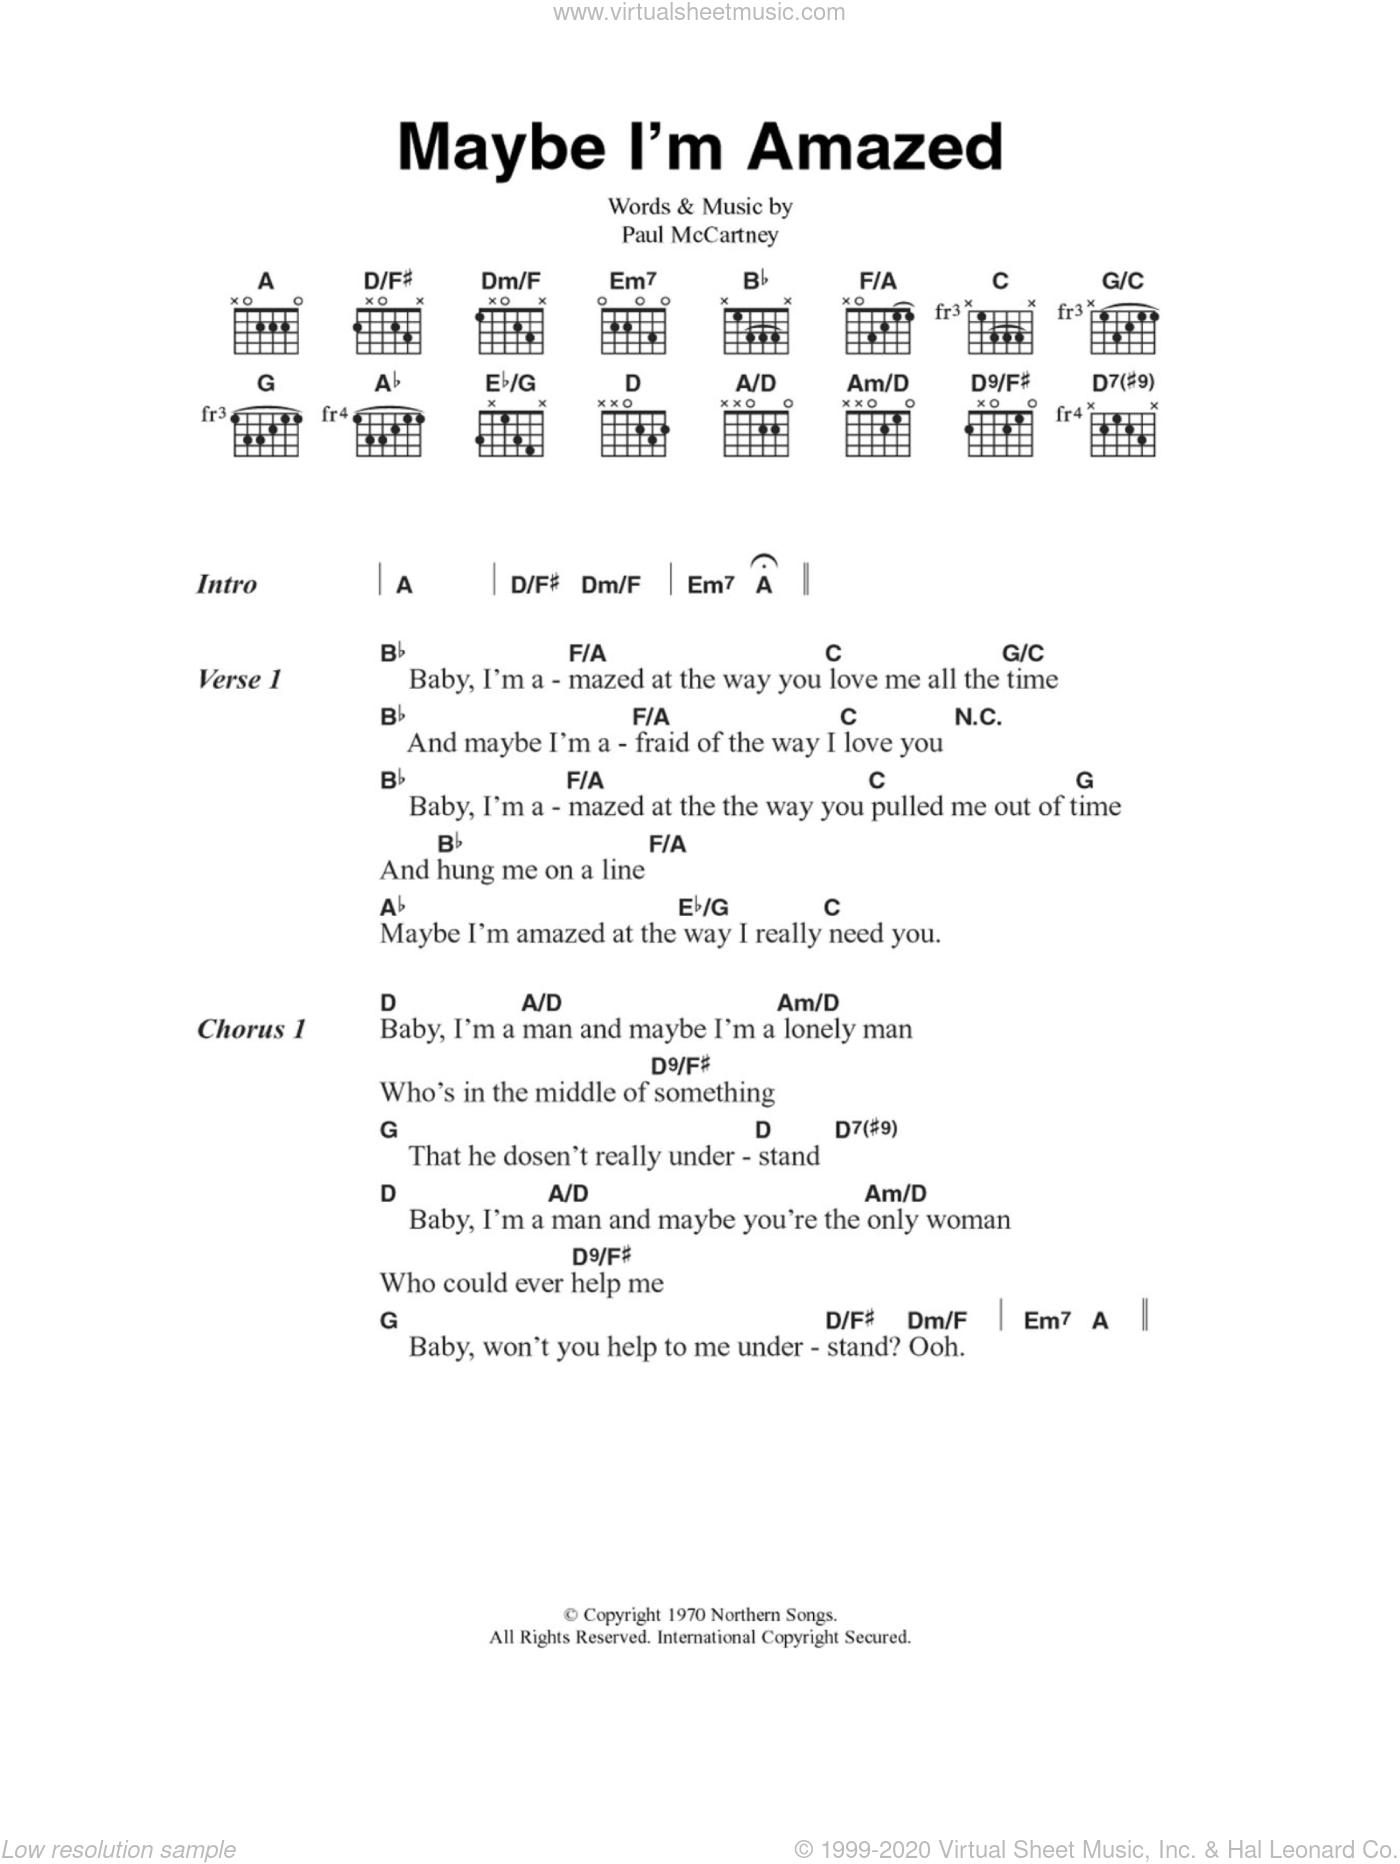 Maybe I'm Amazed sheet music for guitar (chords) by Paul McCartney